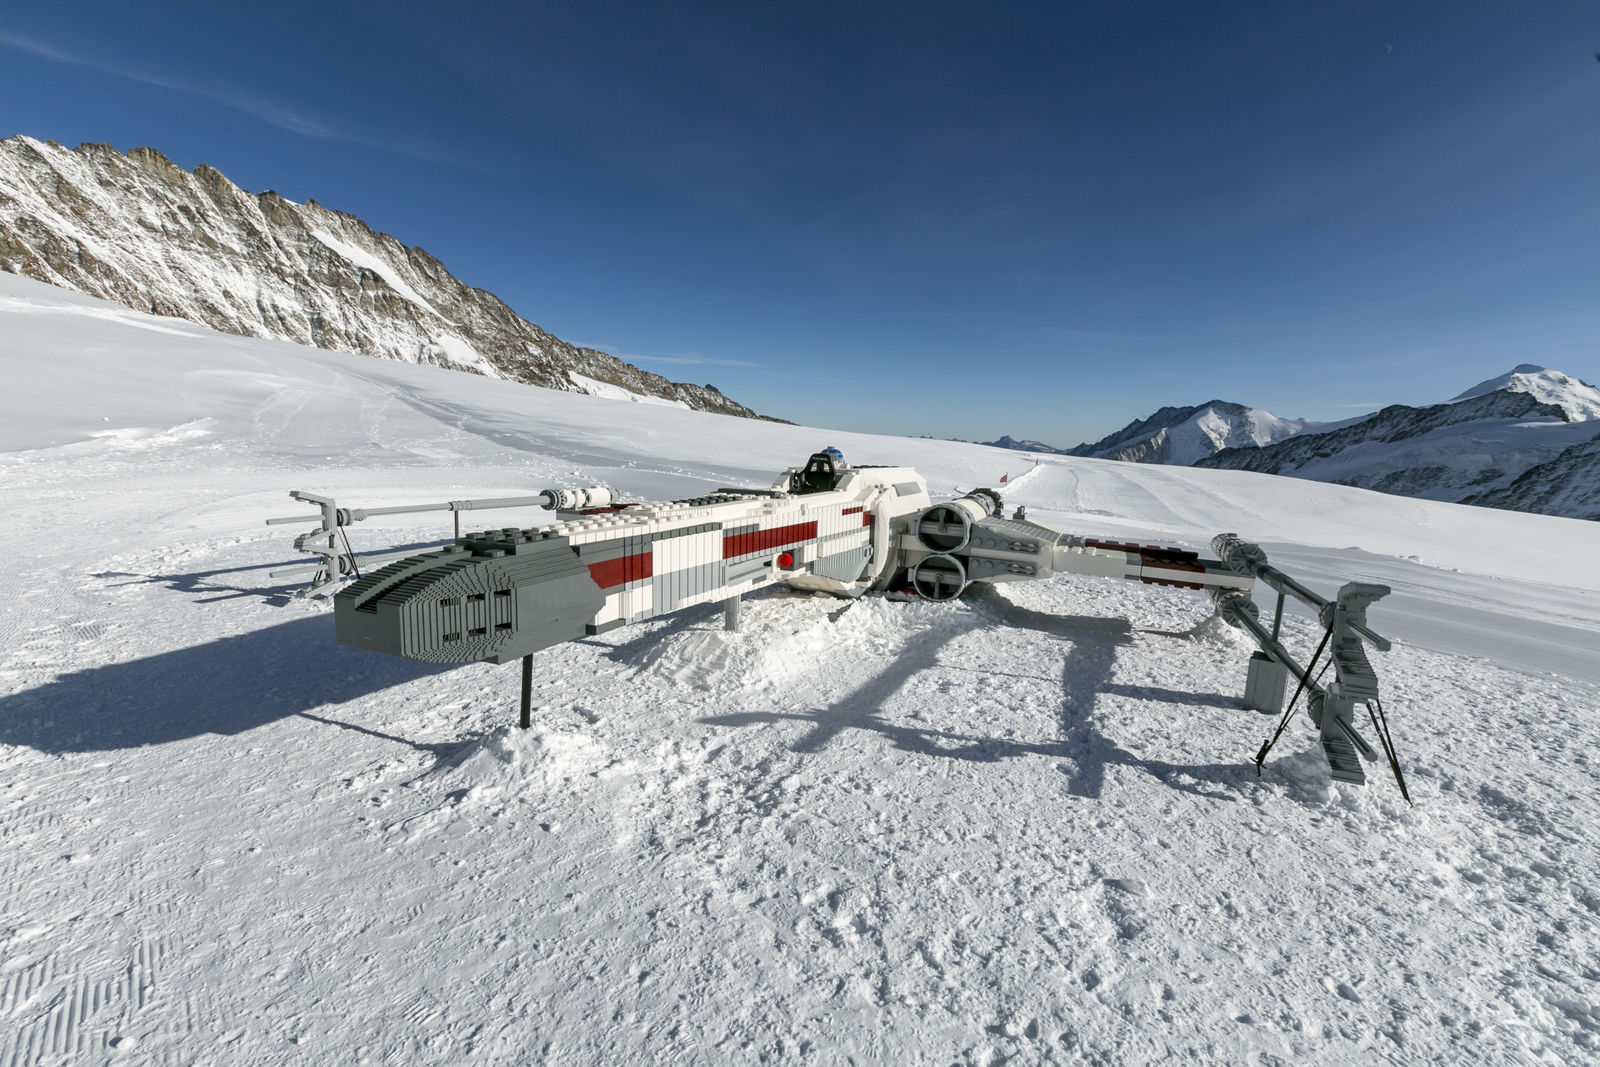 "GRINDELWALD, SWITZERLAND - OCTOBER 03: A LEGO Star Wars X-Wing Starfighter is build up at the Jungfraujoch 'Top of  Europe' in Switzerland ahead of ""Triple Force Friday"" on October 03, 2019, near Grindelwald, Switzerland. The lifesize LEGO Star Wars X-Wing Starfighter is built out of 2,5 million LEGO bricks and has a size of 10 x 10 meter.  (Photo by Jan Hetfleisch/Getty Images for the LEGO Group)"